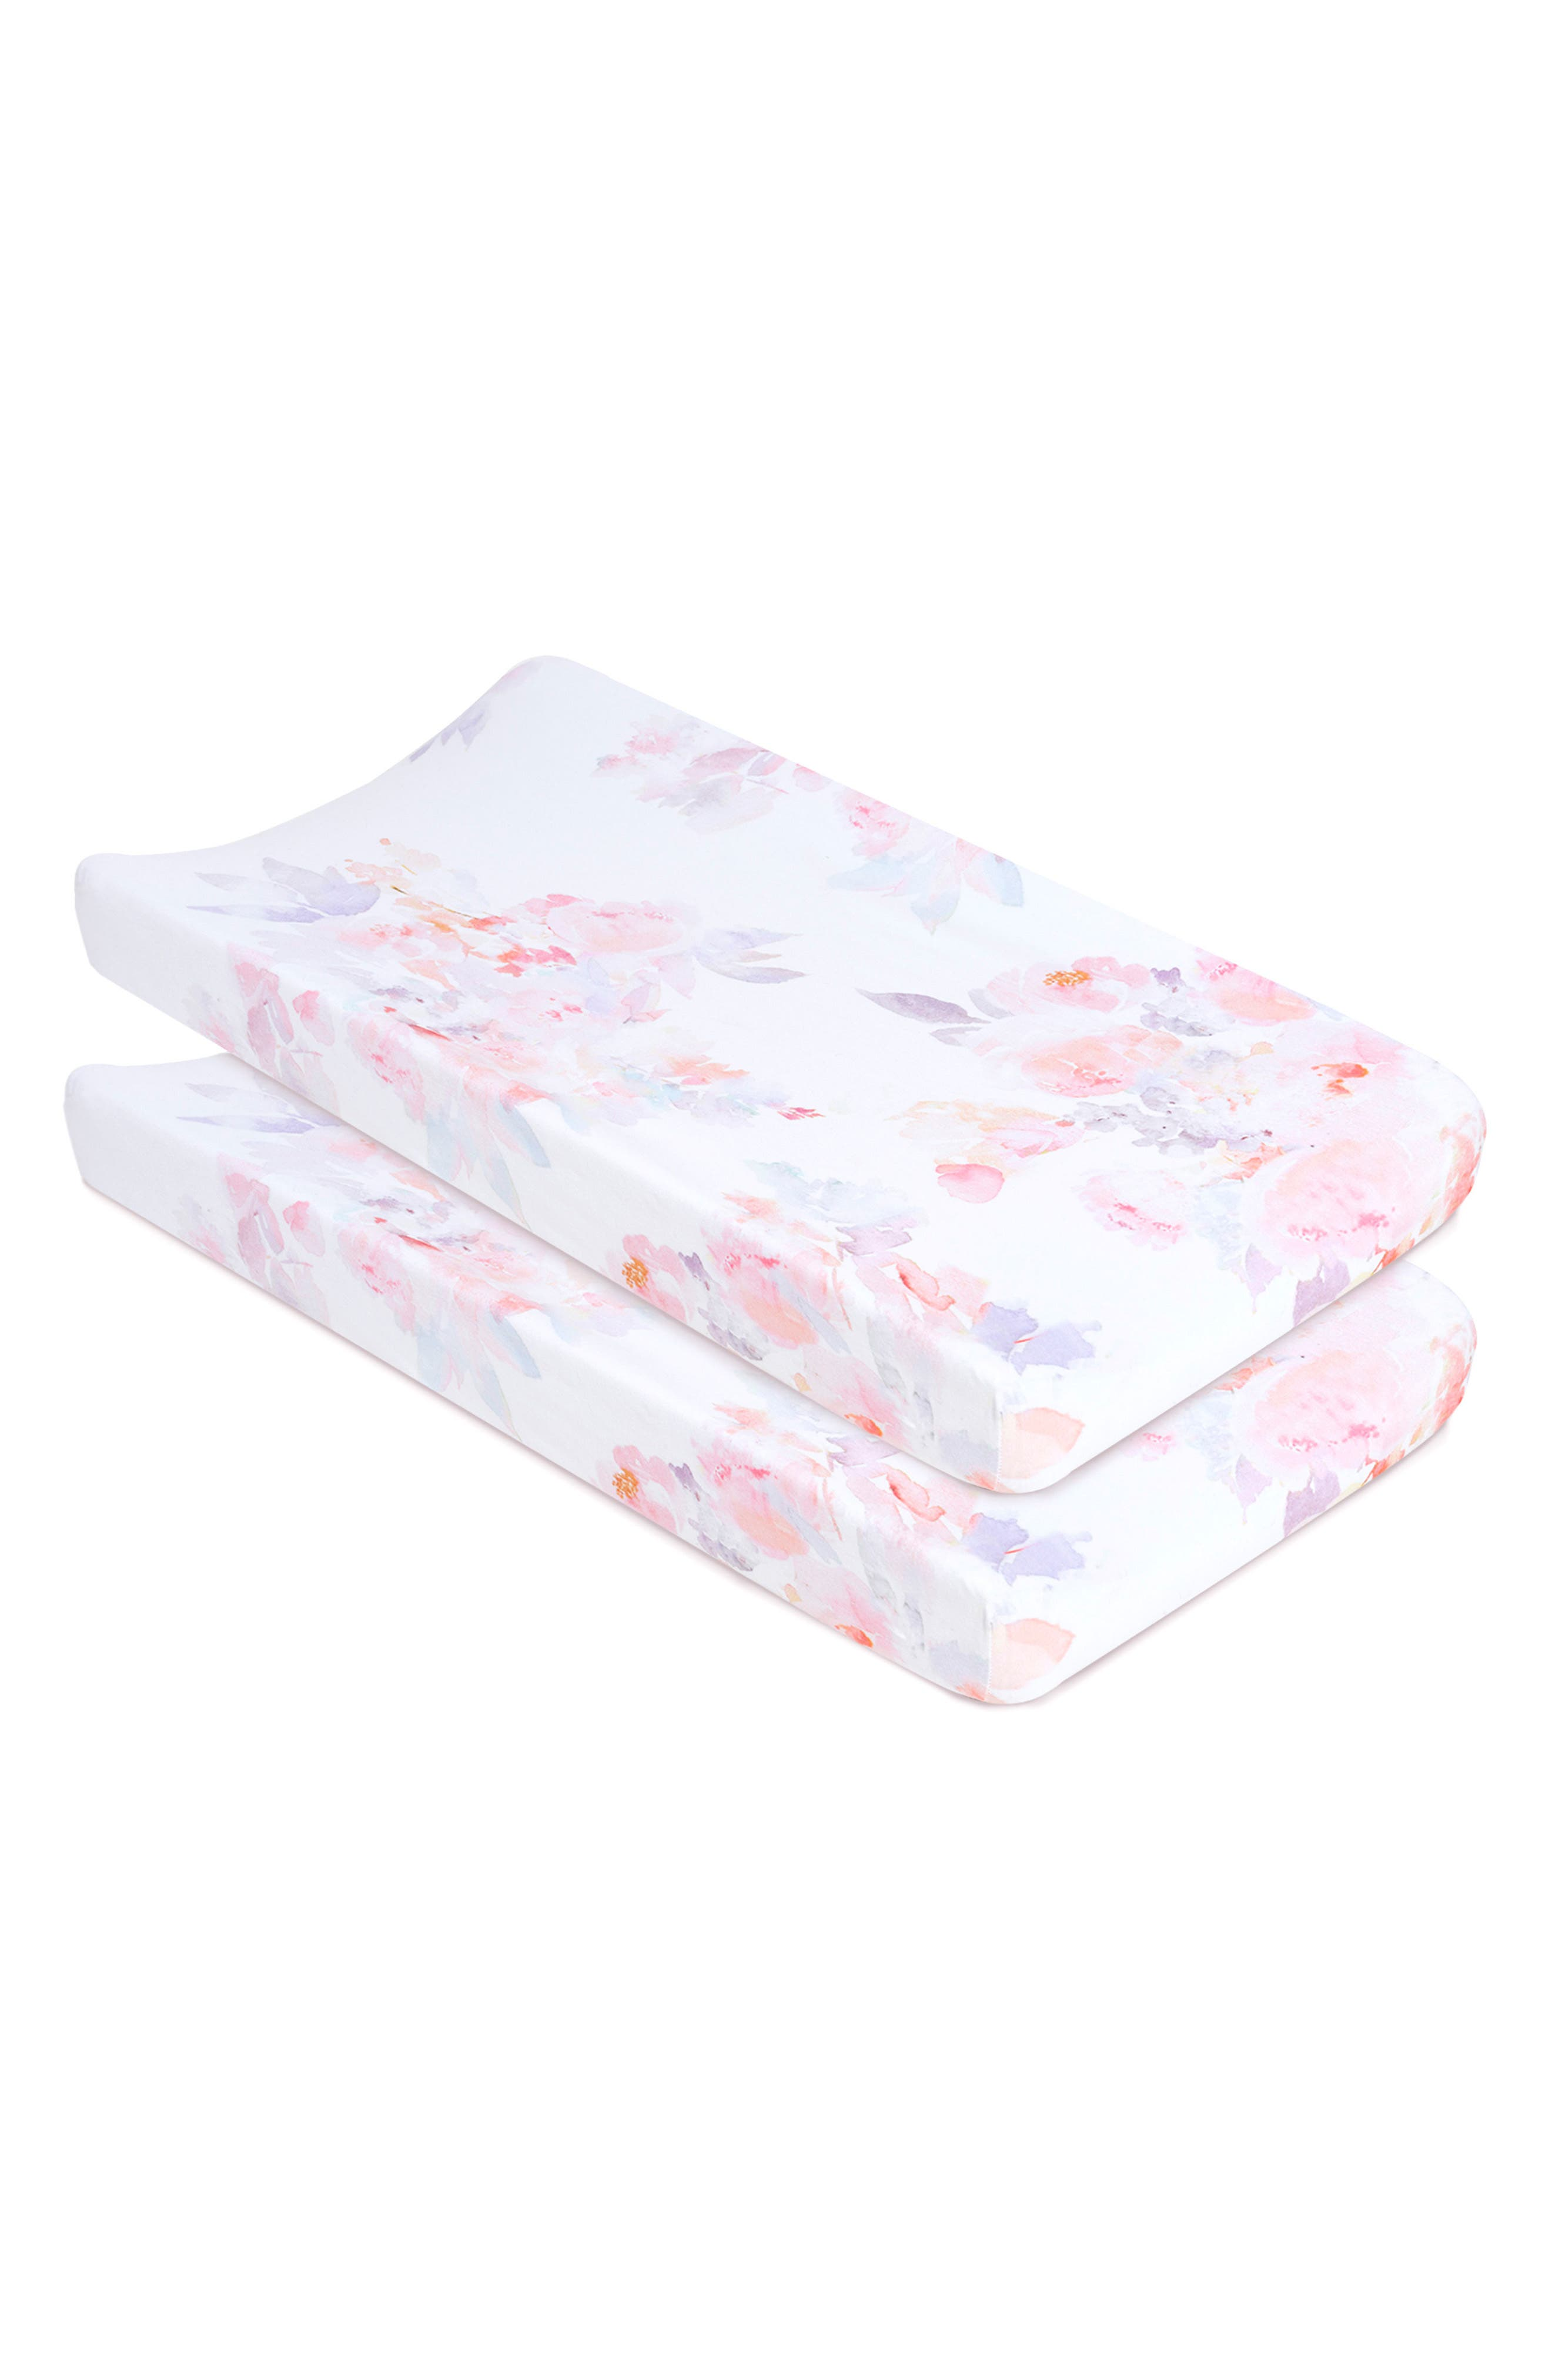 Main Image - Oilo Prim 2-Pack Jersey Changing Pad Covers